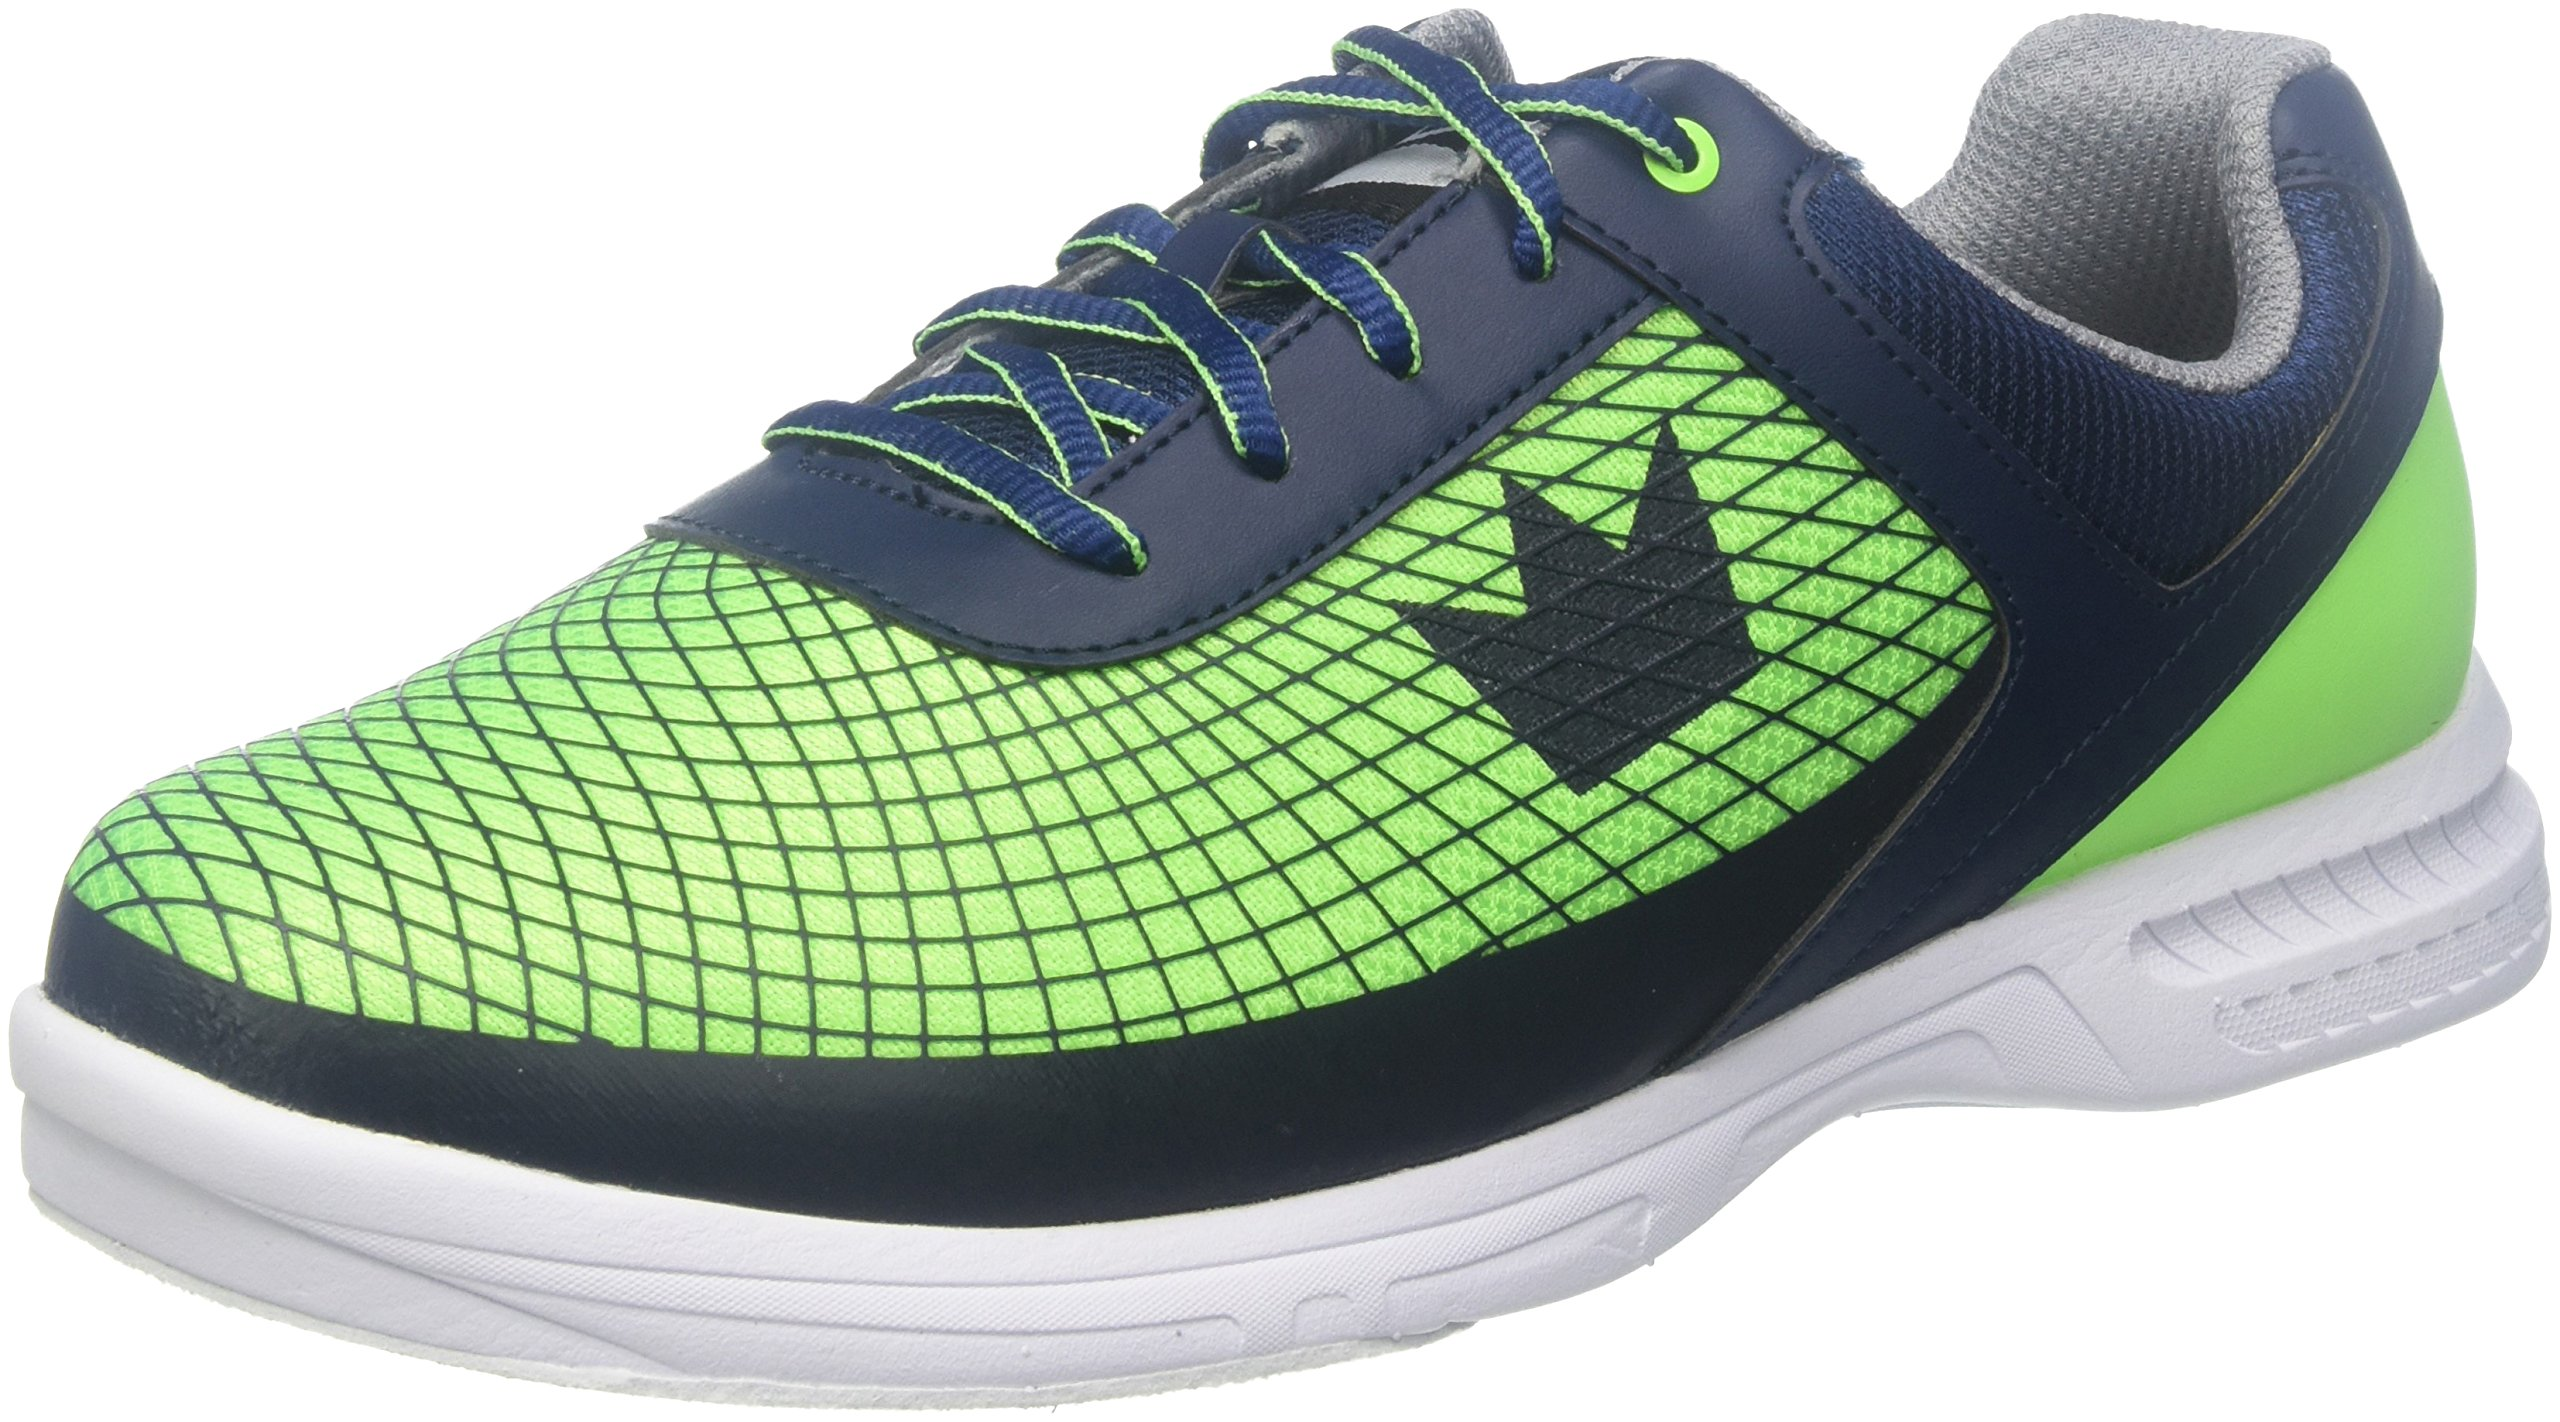 Brunswick Frenzy Mens Bowling Shoe Navy/Green, 7.0